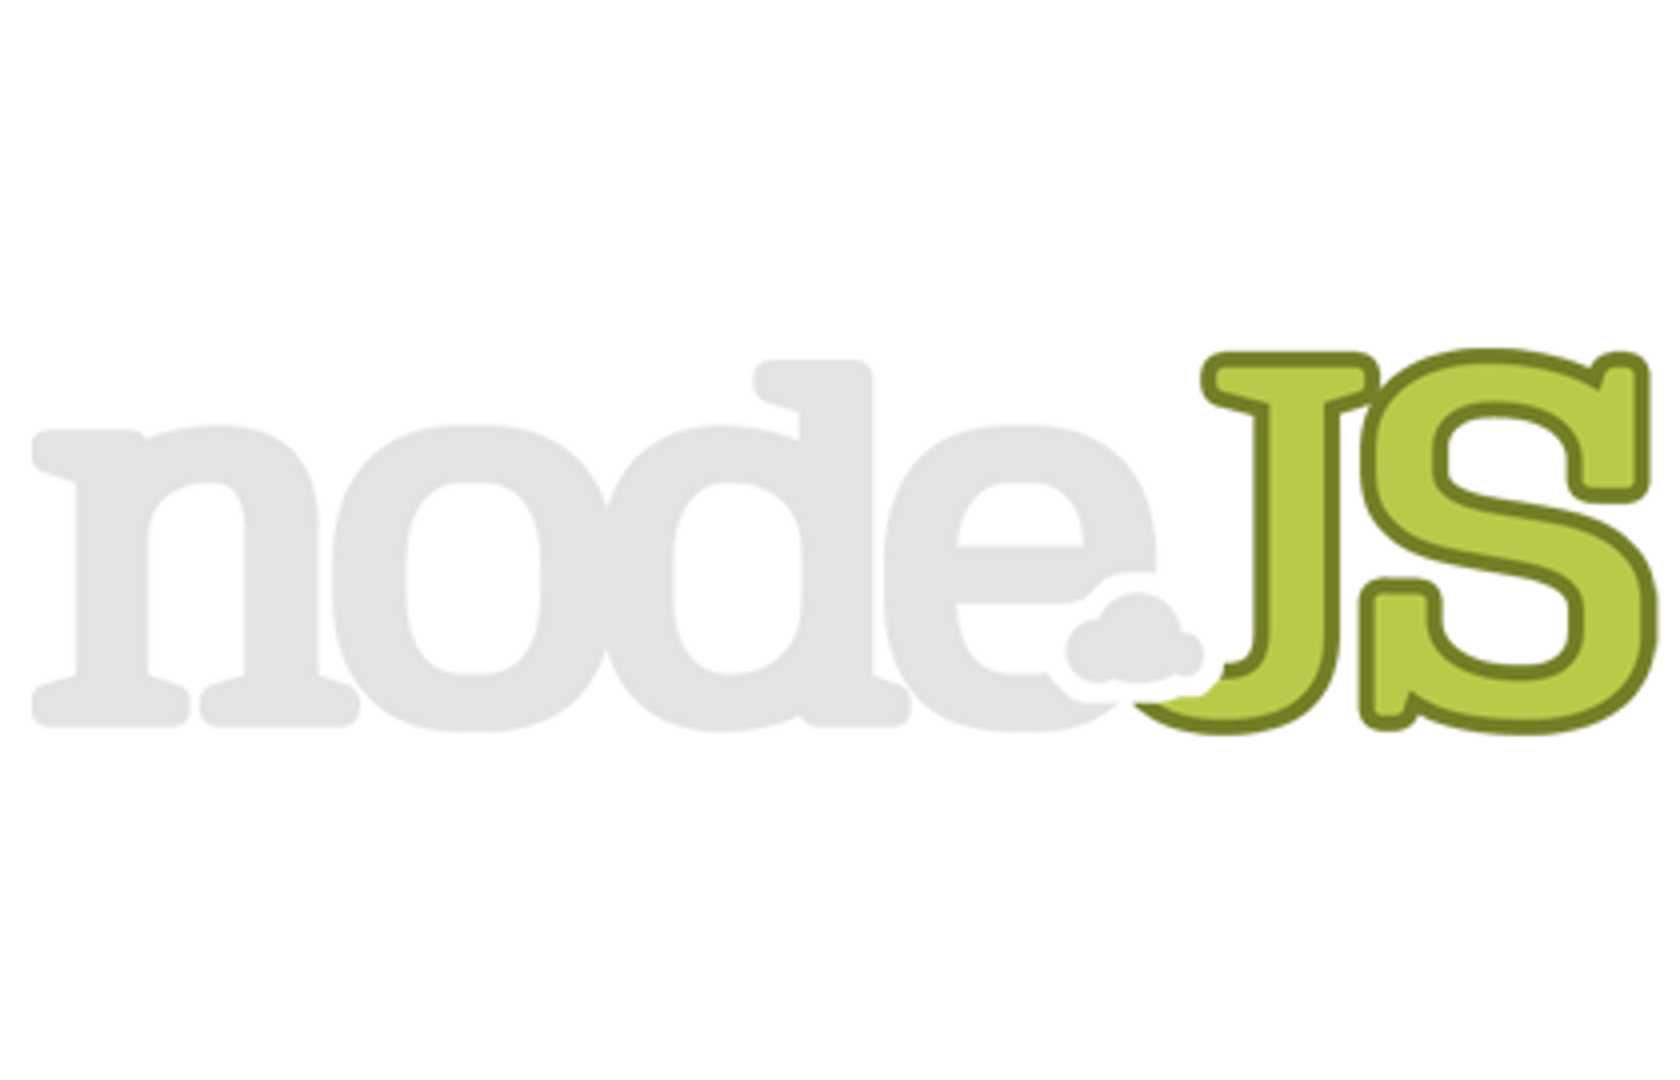 5 Free Beginner Friendly Books for Learning Node.js